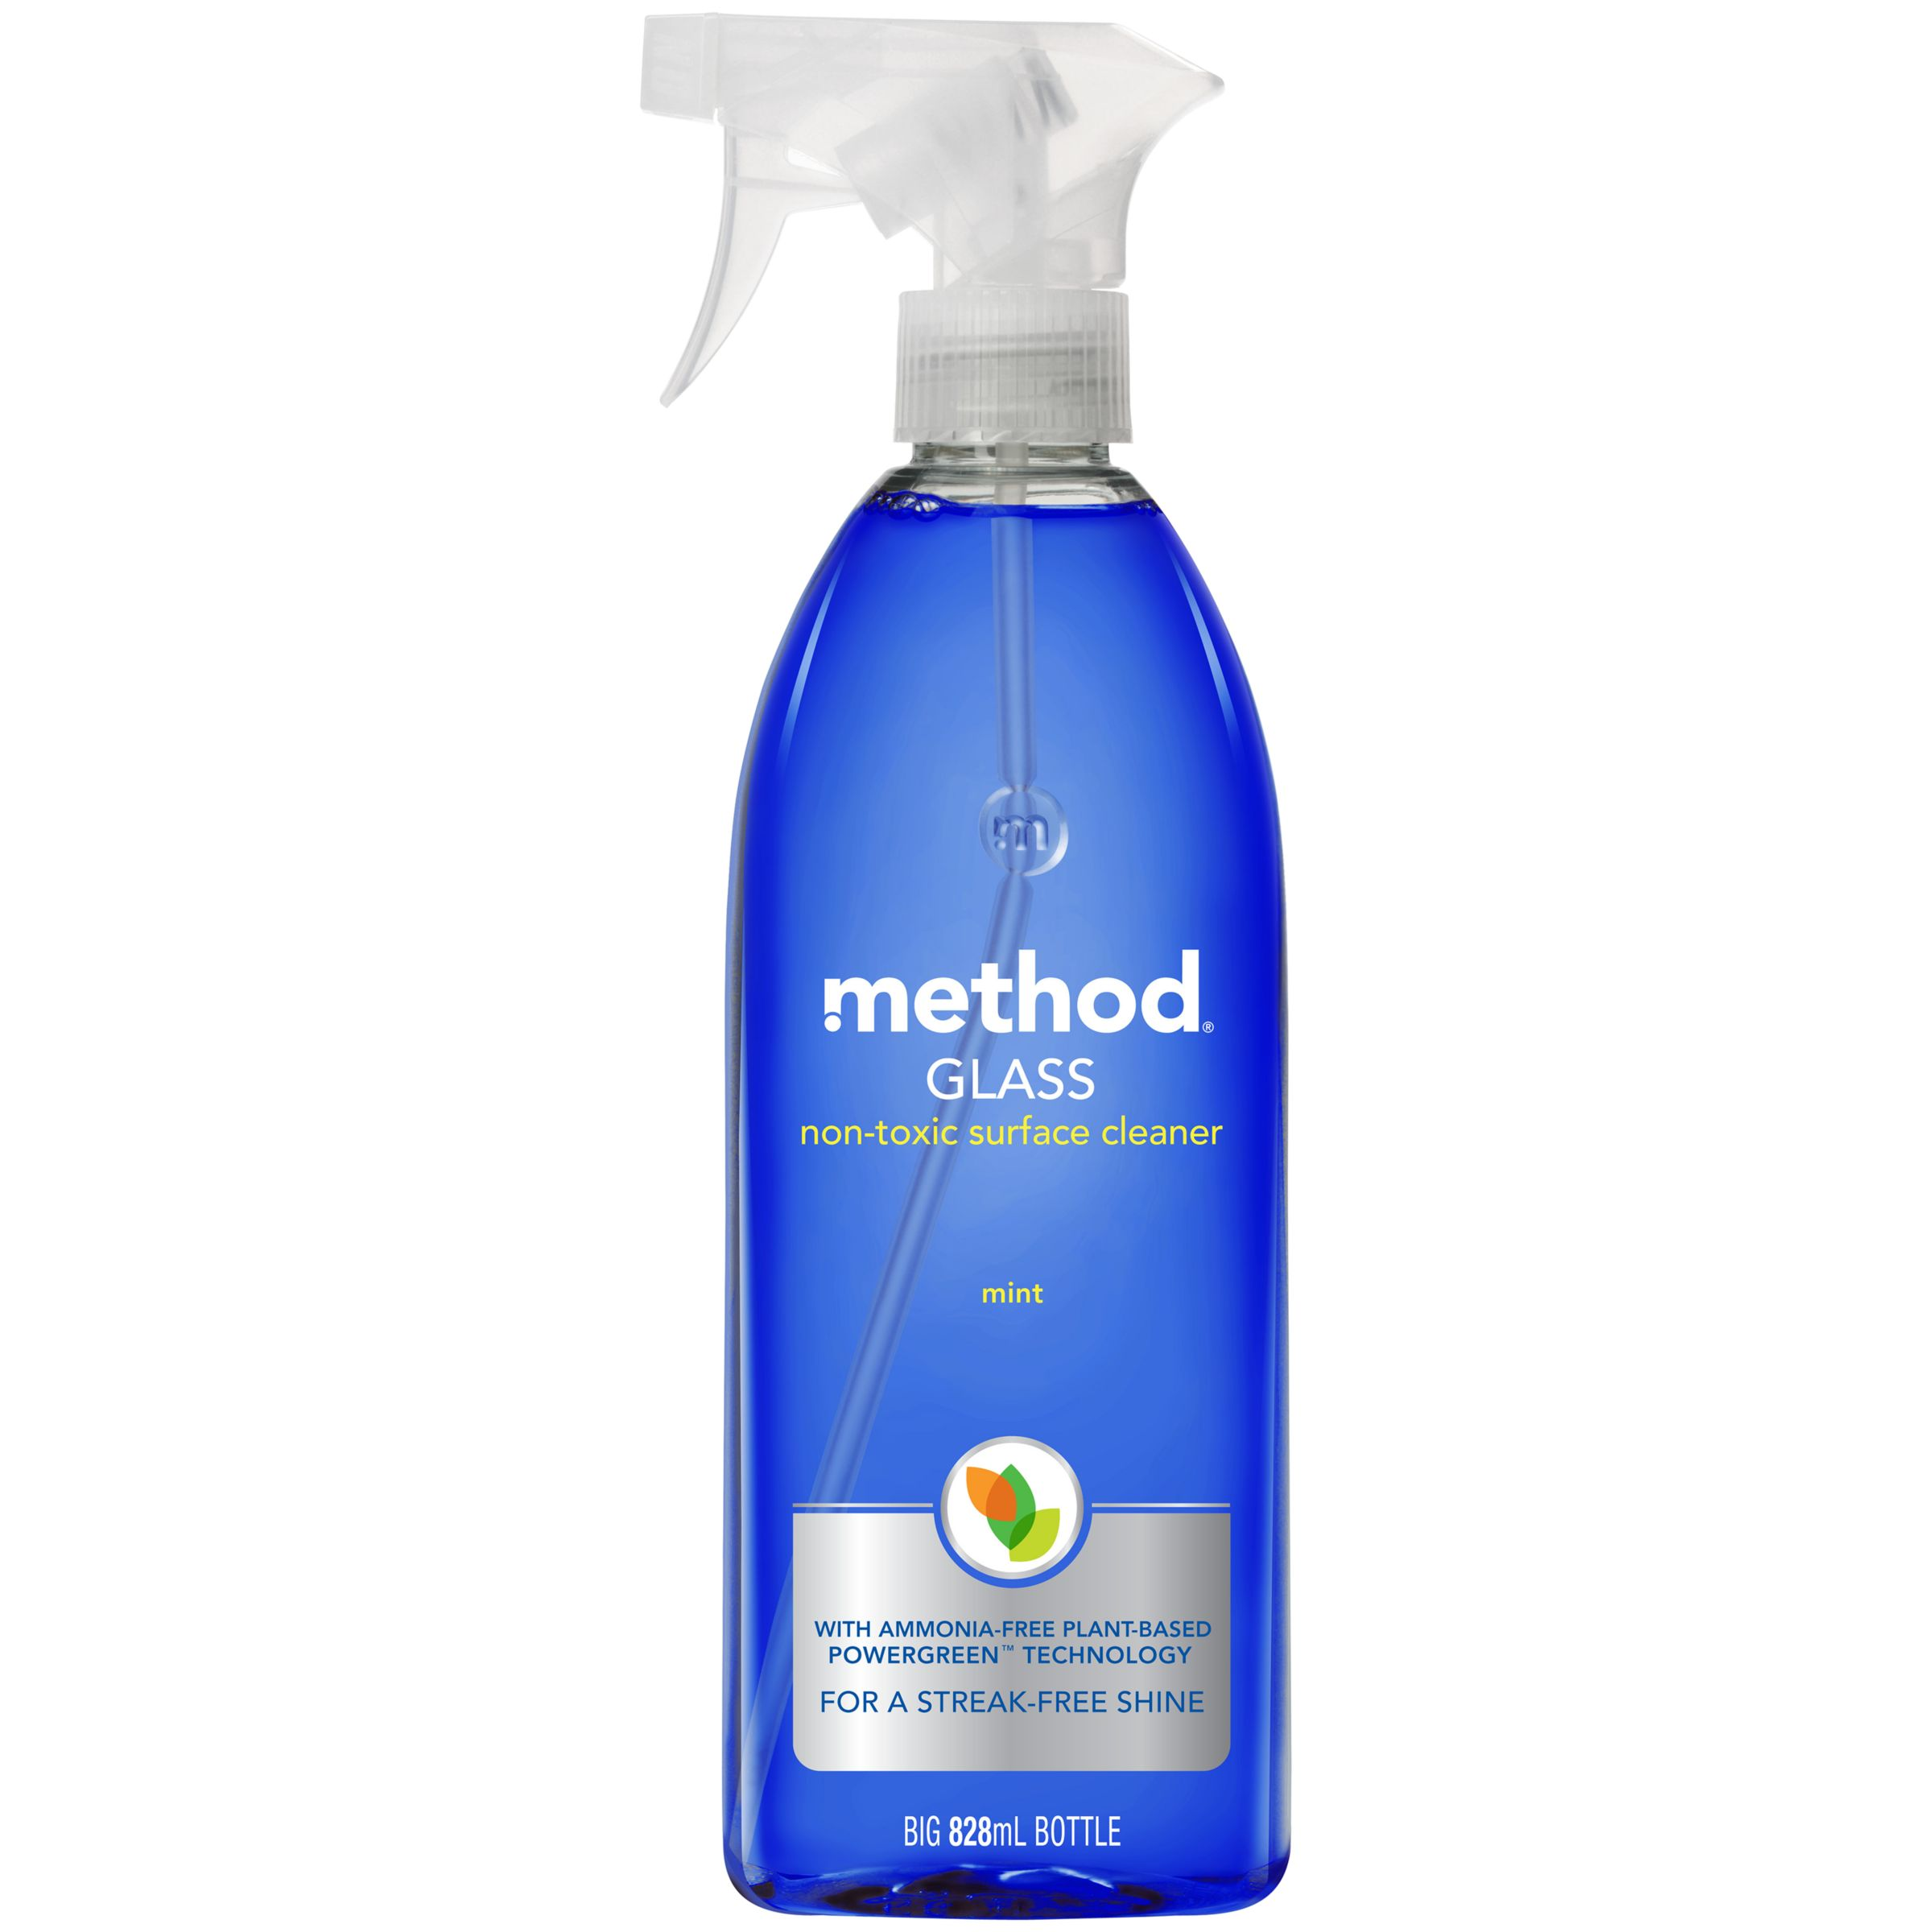 Method Method Mint Window Glass Cleaning Spray